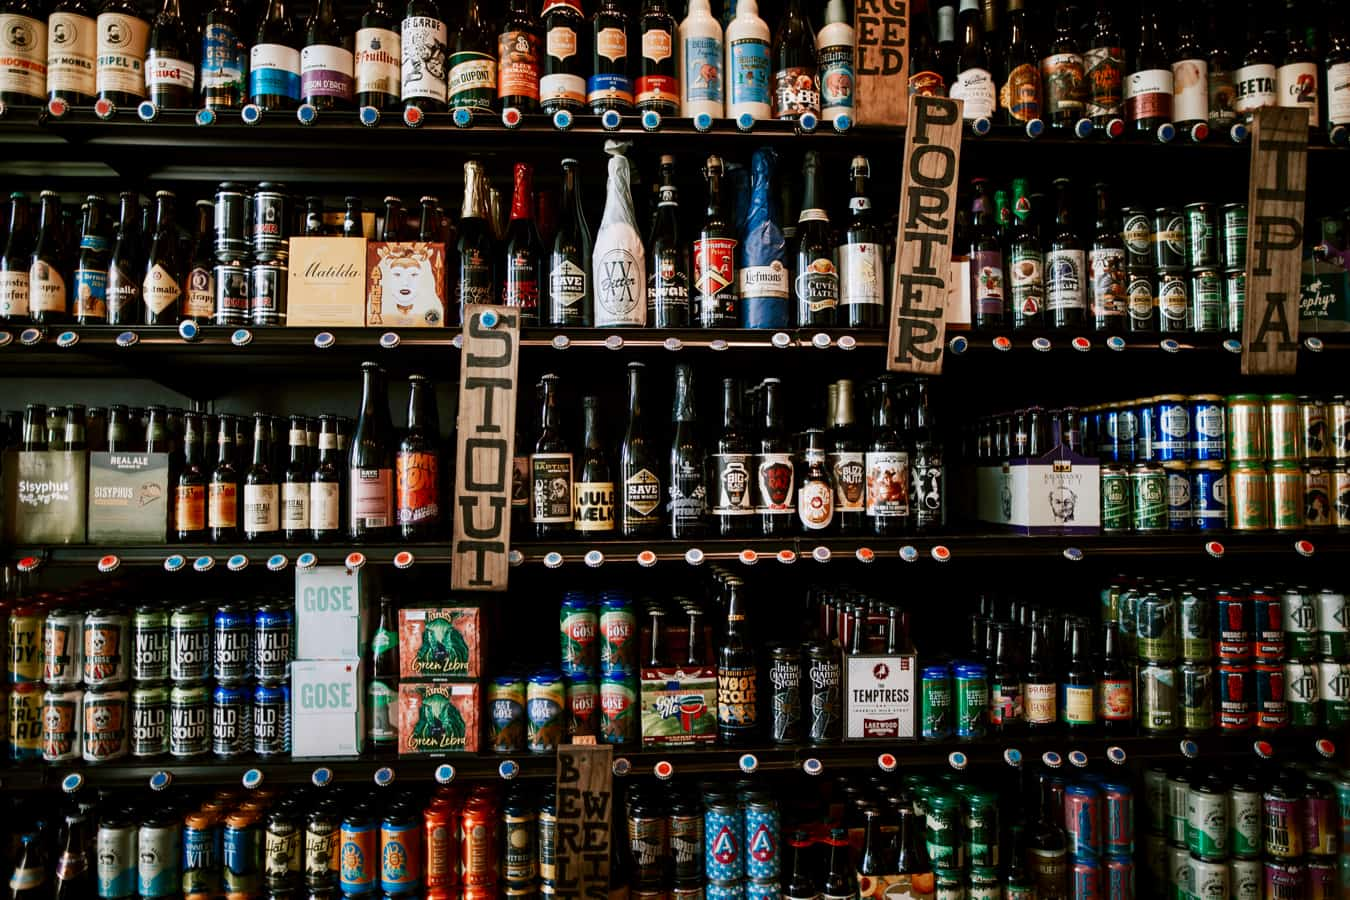 A wall of beers and alcoholic drinks at a bar in Austin, Texas